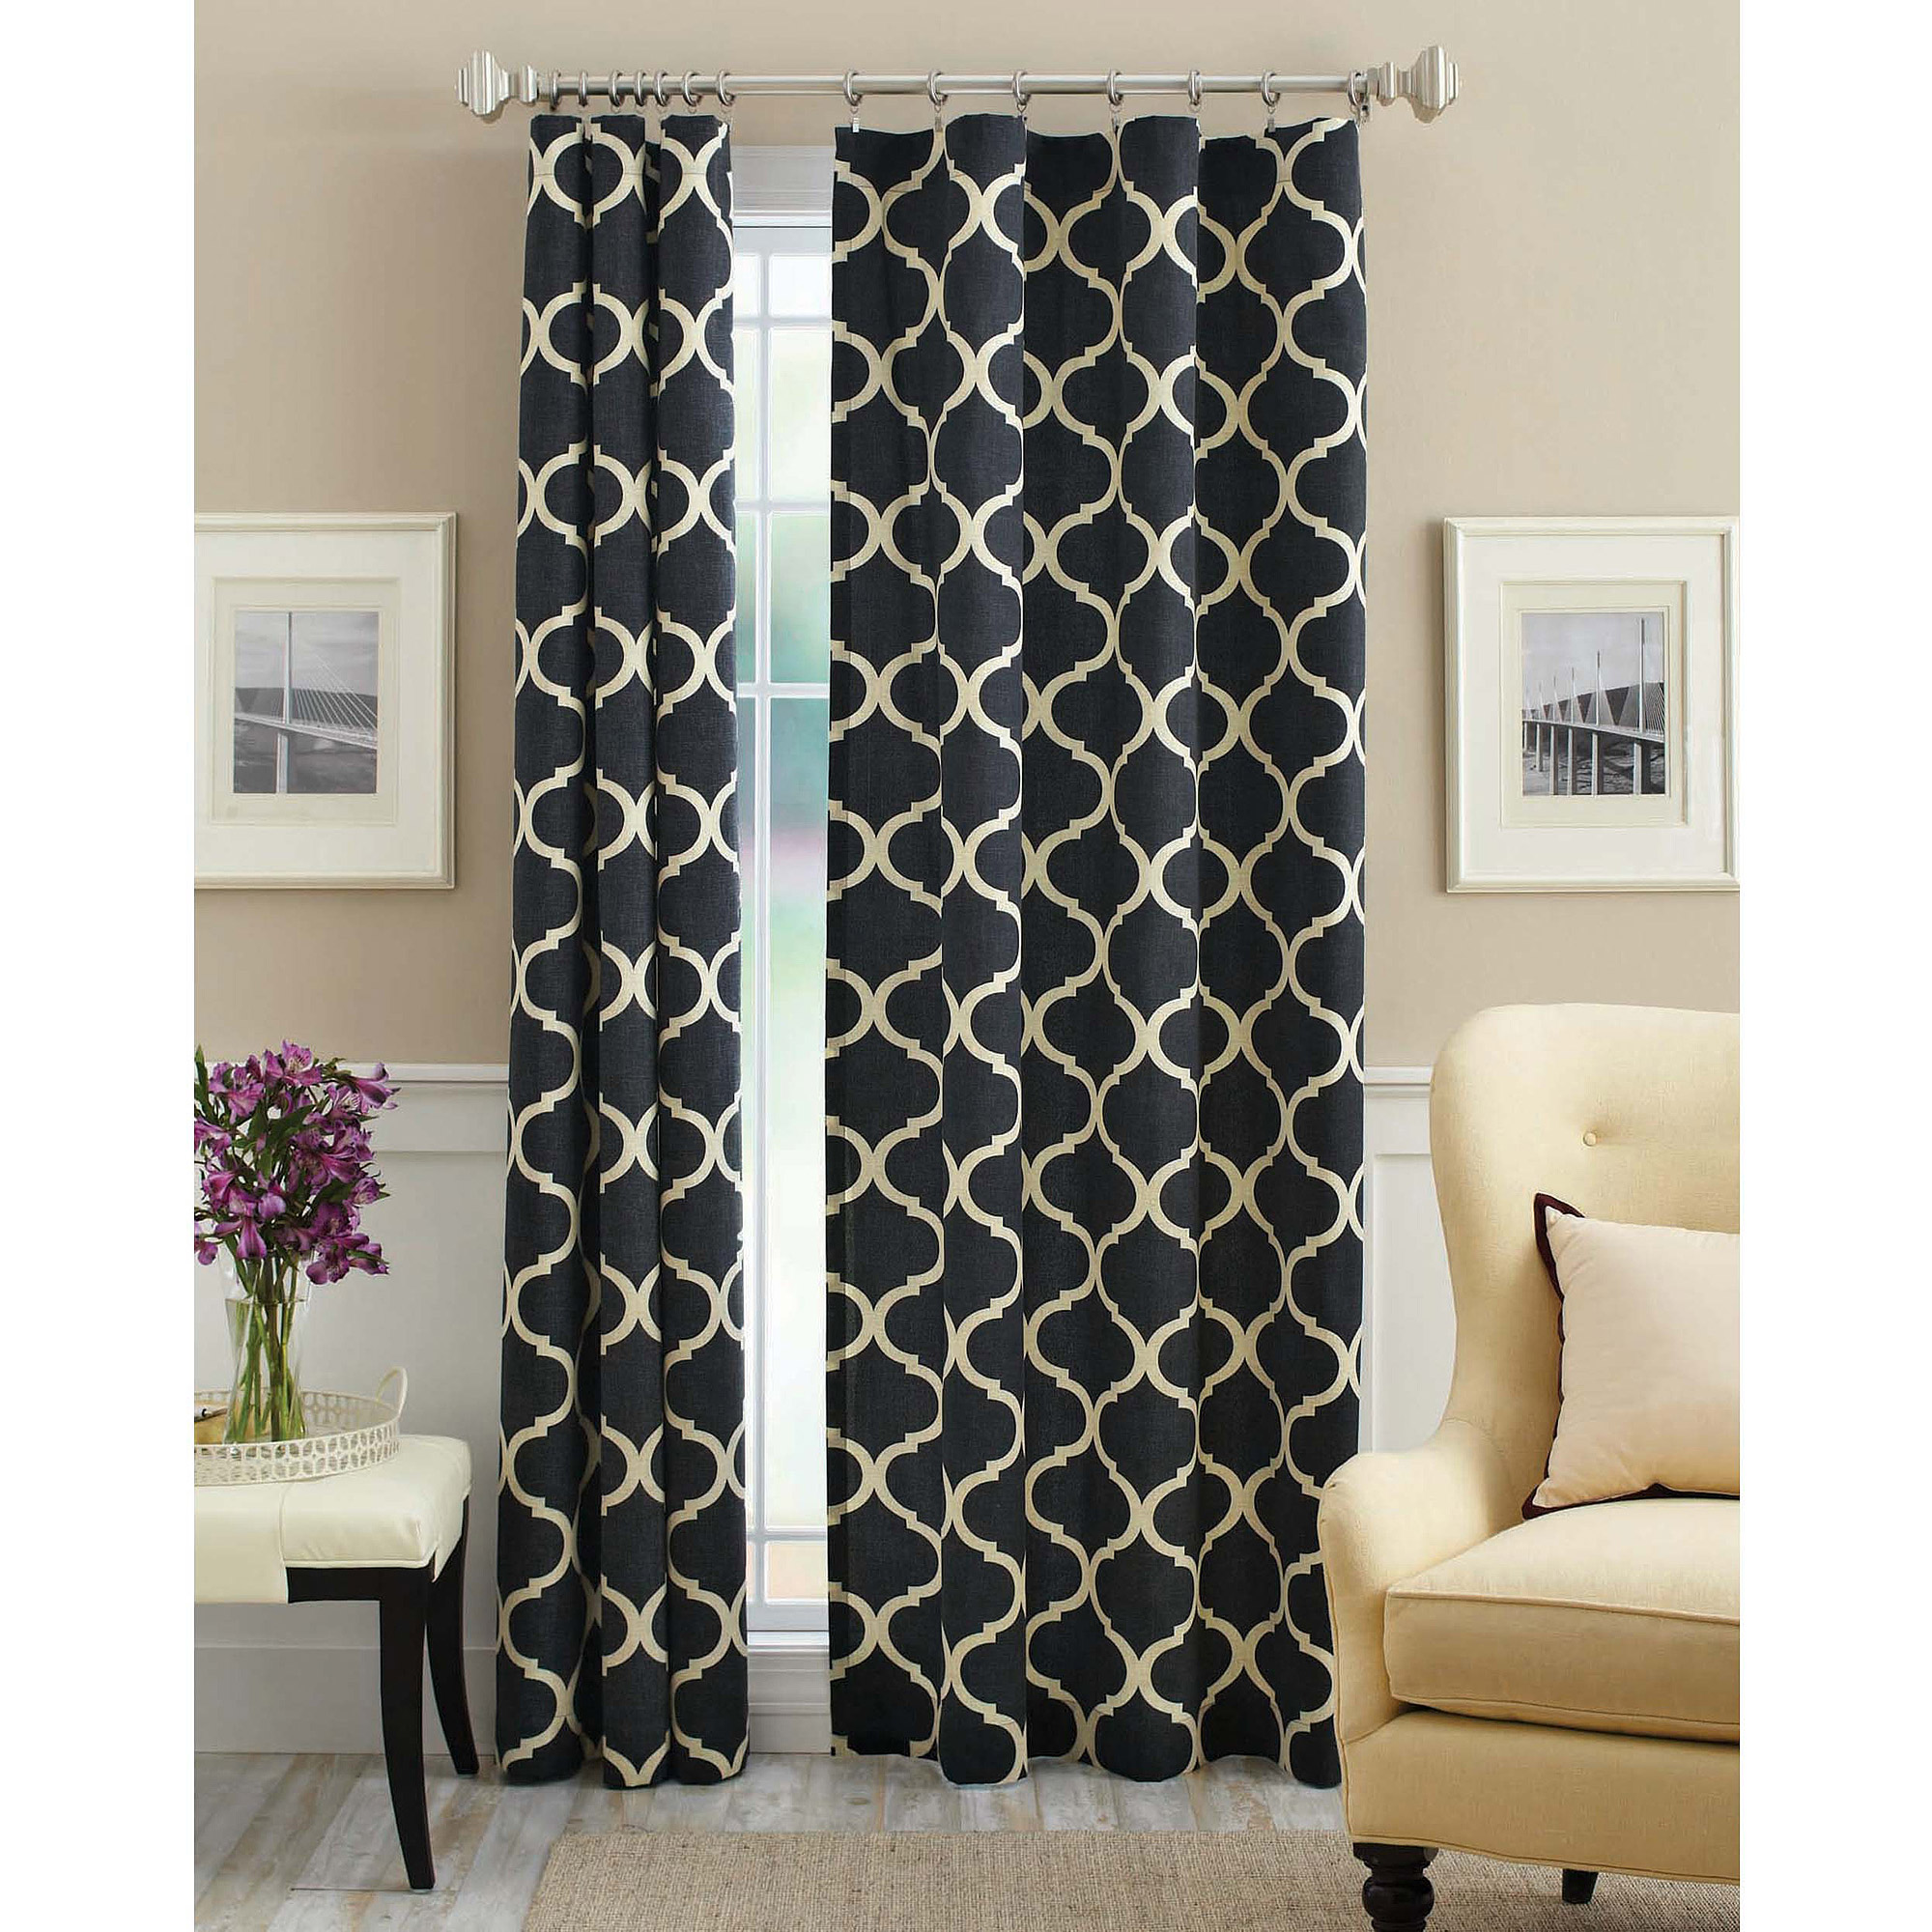 Cheap Blackout Curtains for Inspiring Home Decorating Ideas: Blackout Curtains Thermal | White Darkening Curtains | Cheap Blackout Curtains